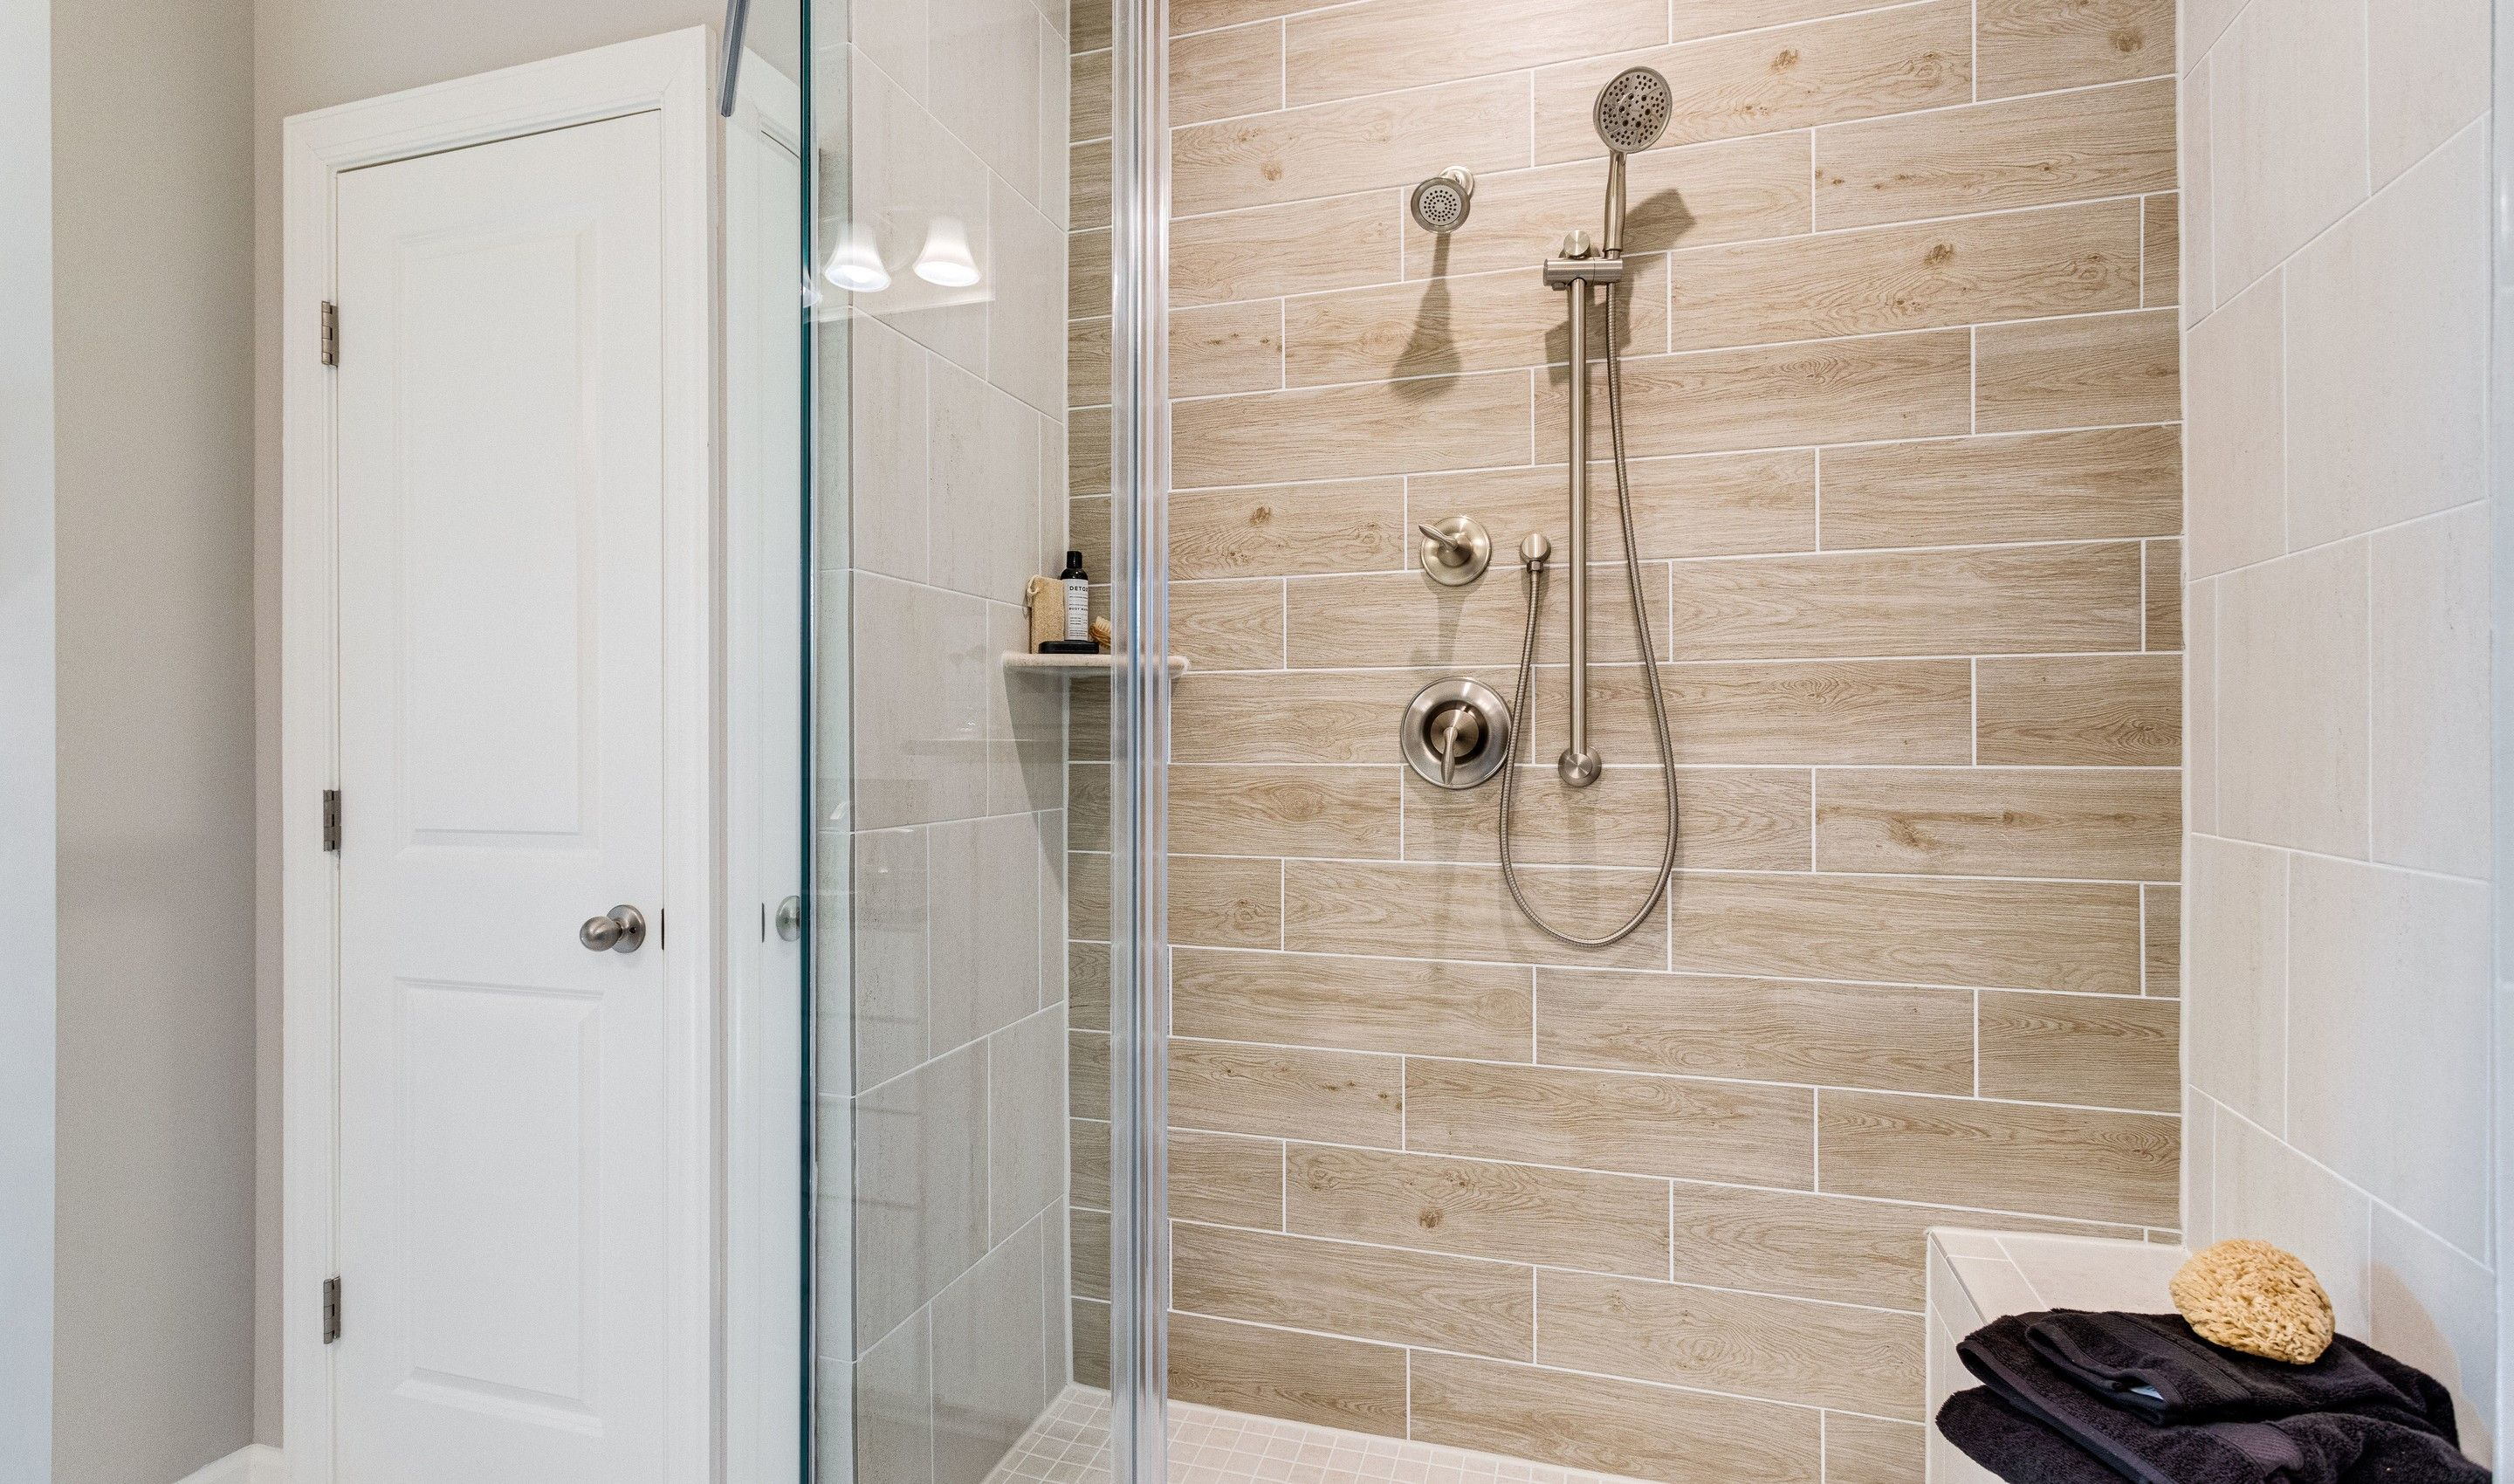 Bathroom featured in the Brandeis By K. Hovnanian® Homes in Washington, VA